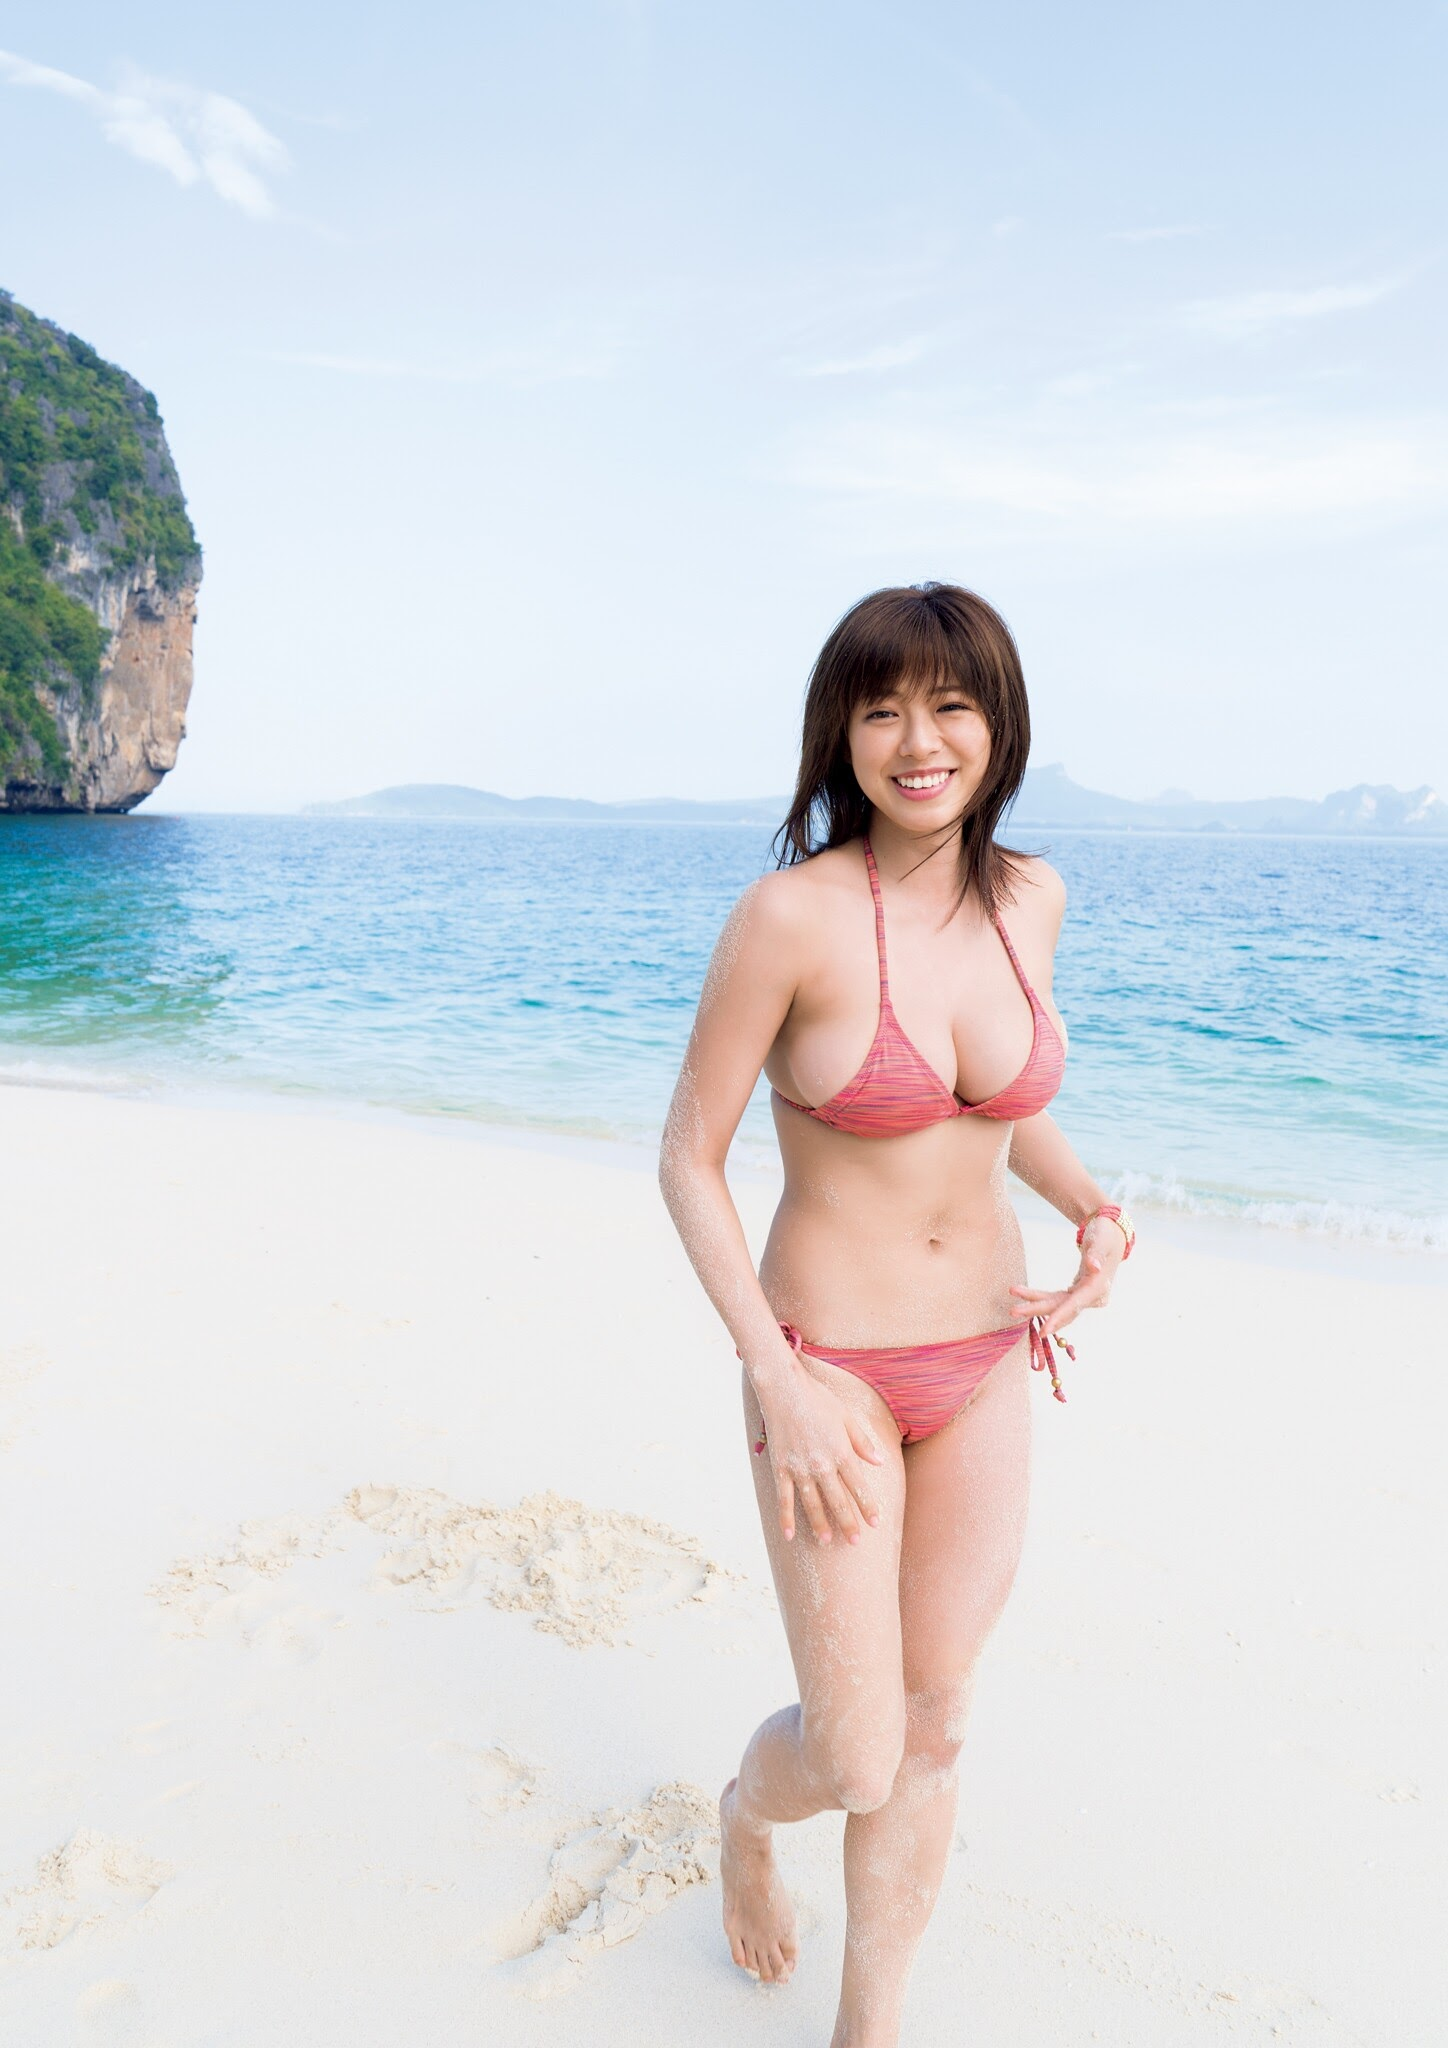 Super body of H cup Minami Wachi 2020 that exposes body and mind in tropical Thailand003